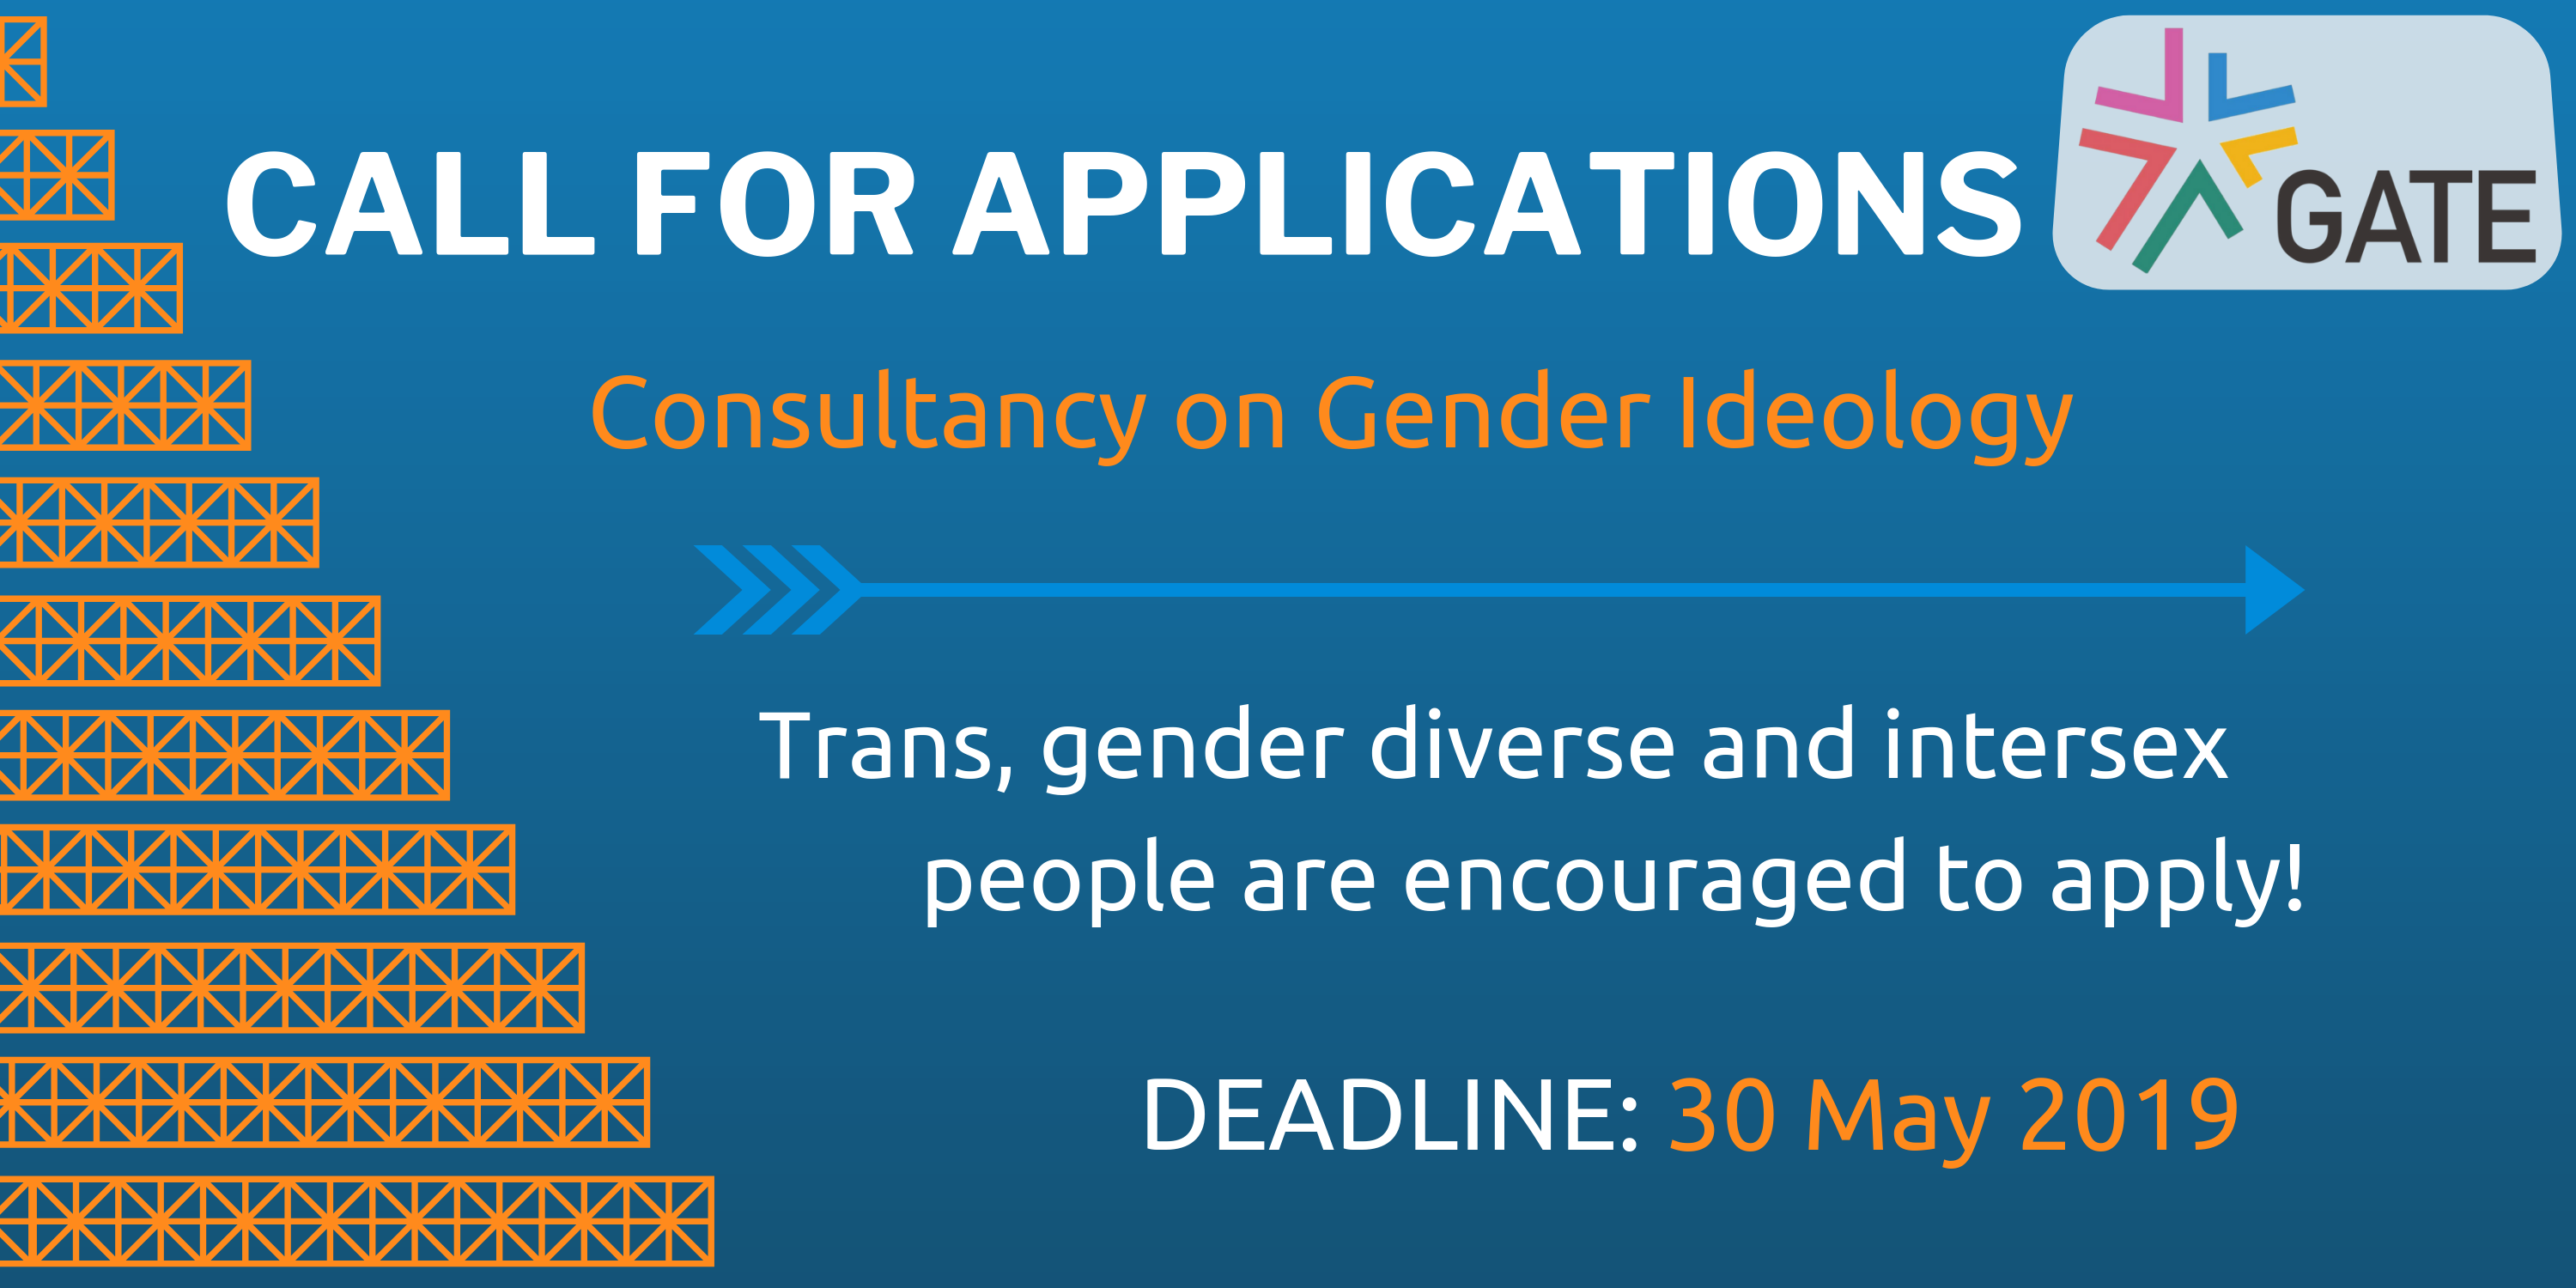 Call for applications: Consultancy on Gender Ideology